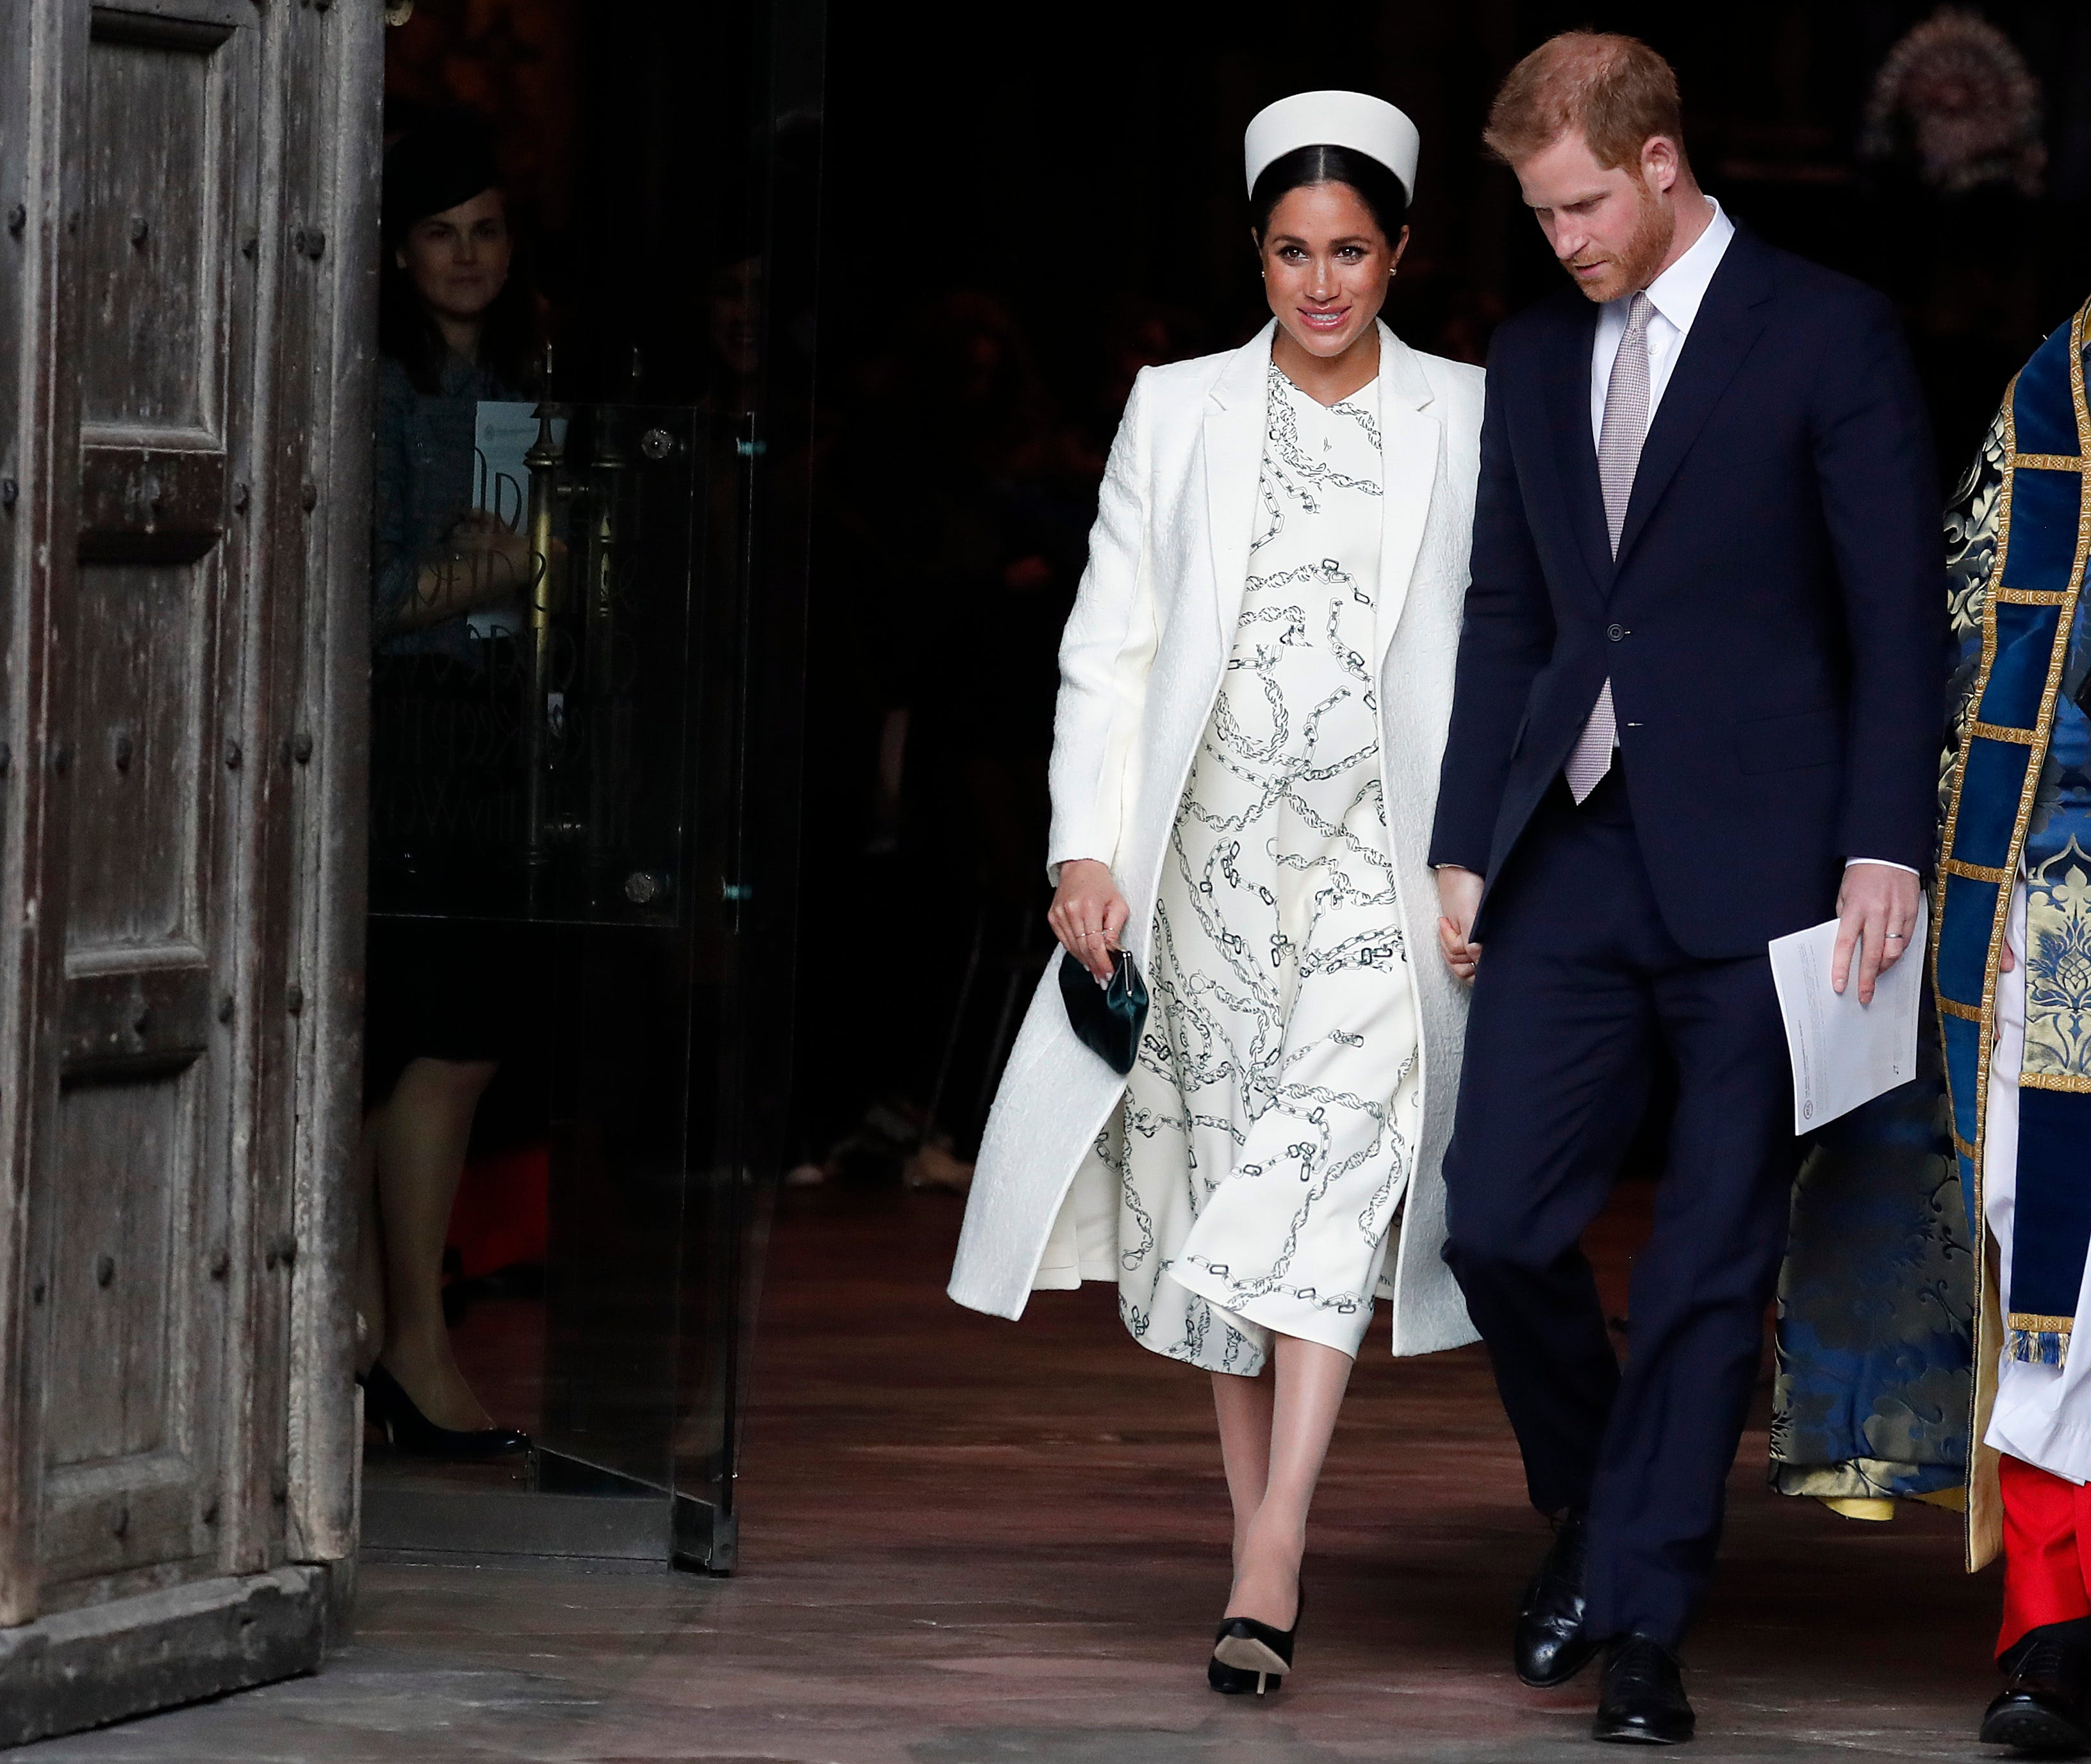 Newly independent Harry and Meghan launch their own Instagram account